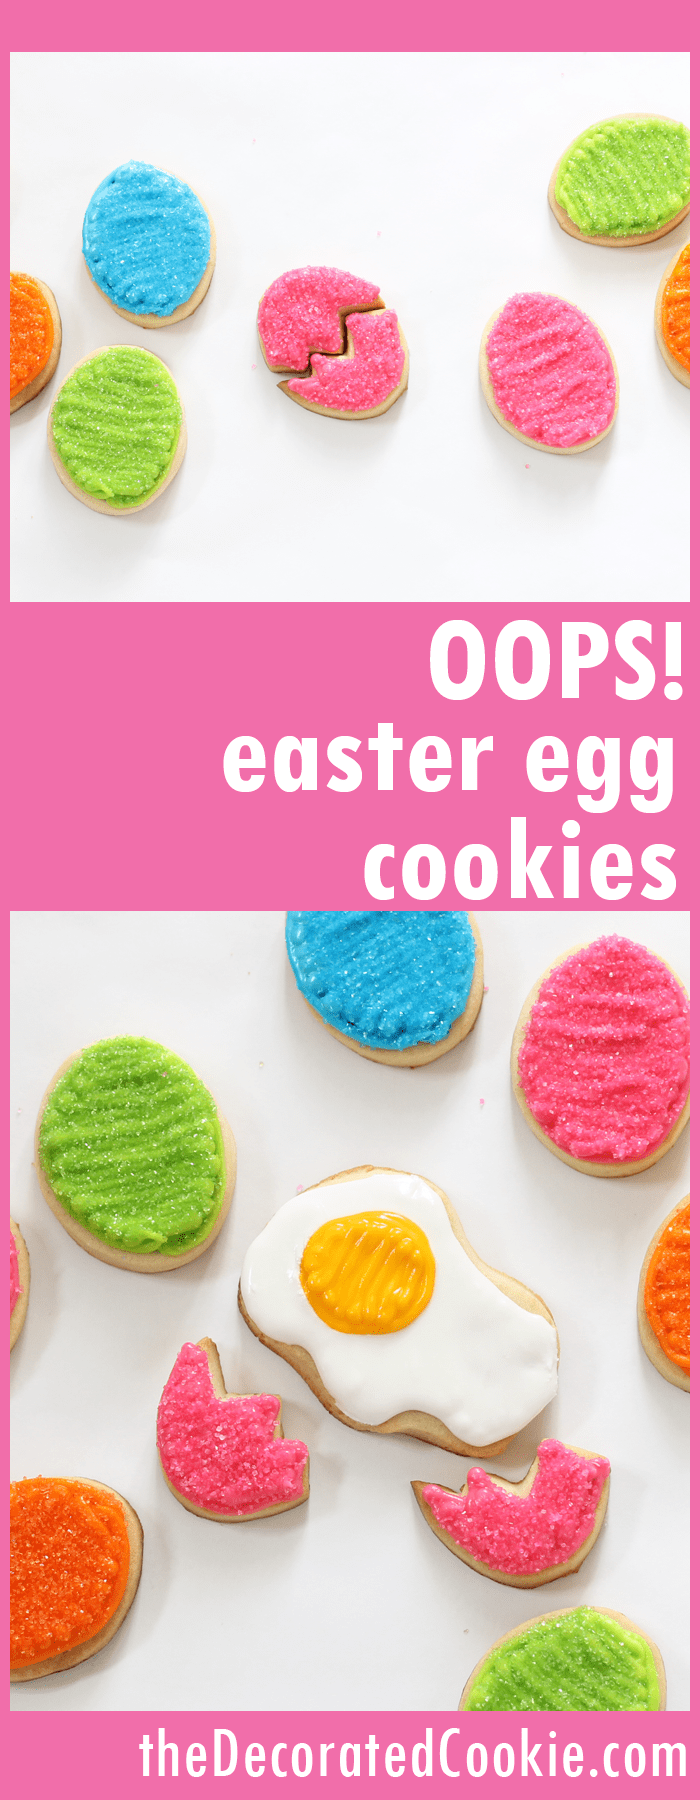 """oops"" cracked Easter egg cookies"